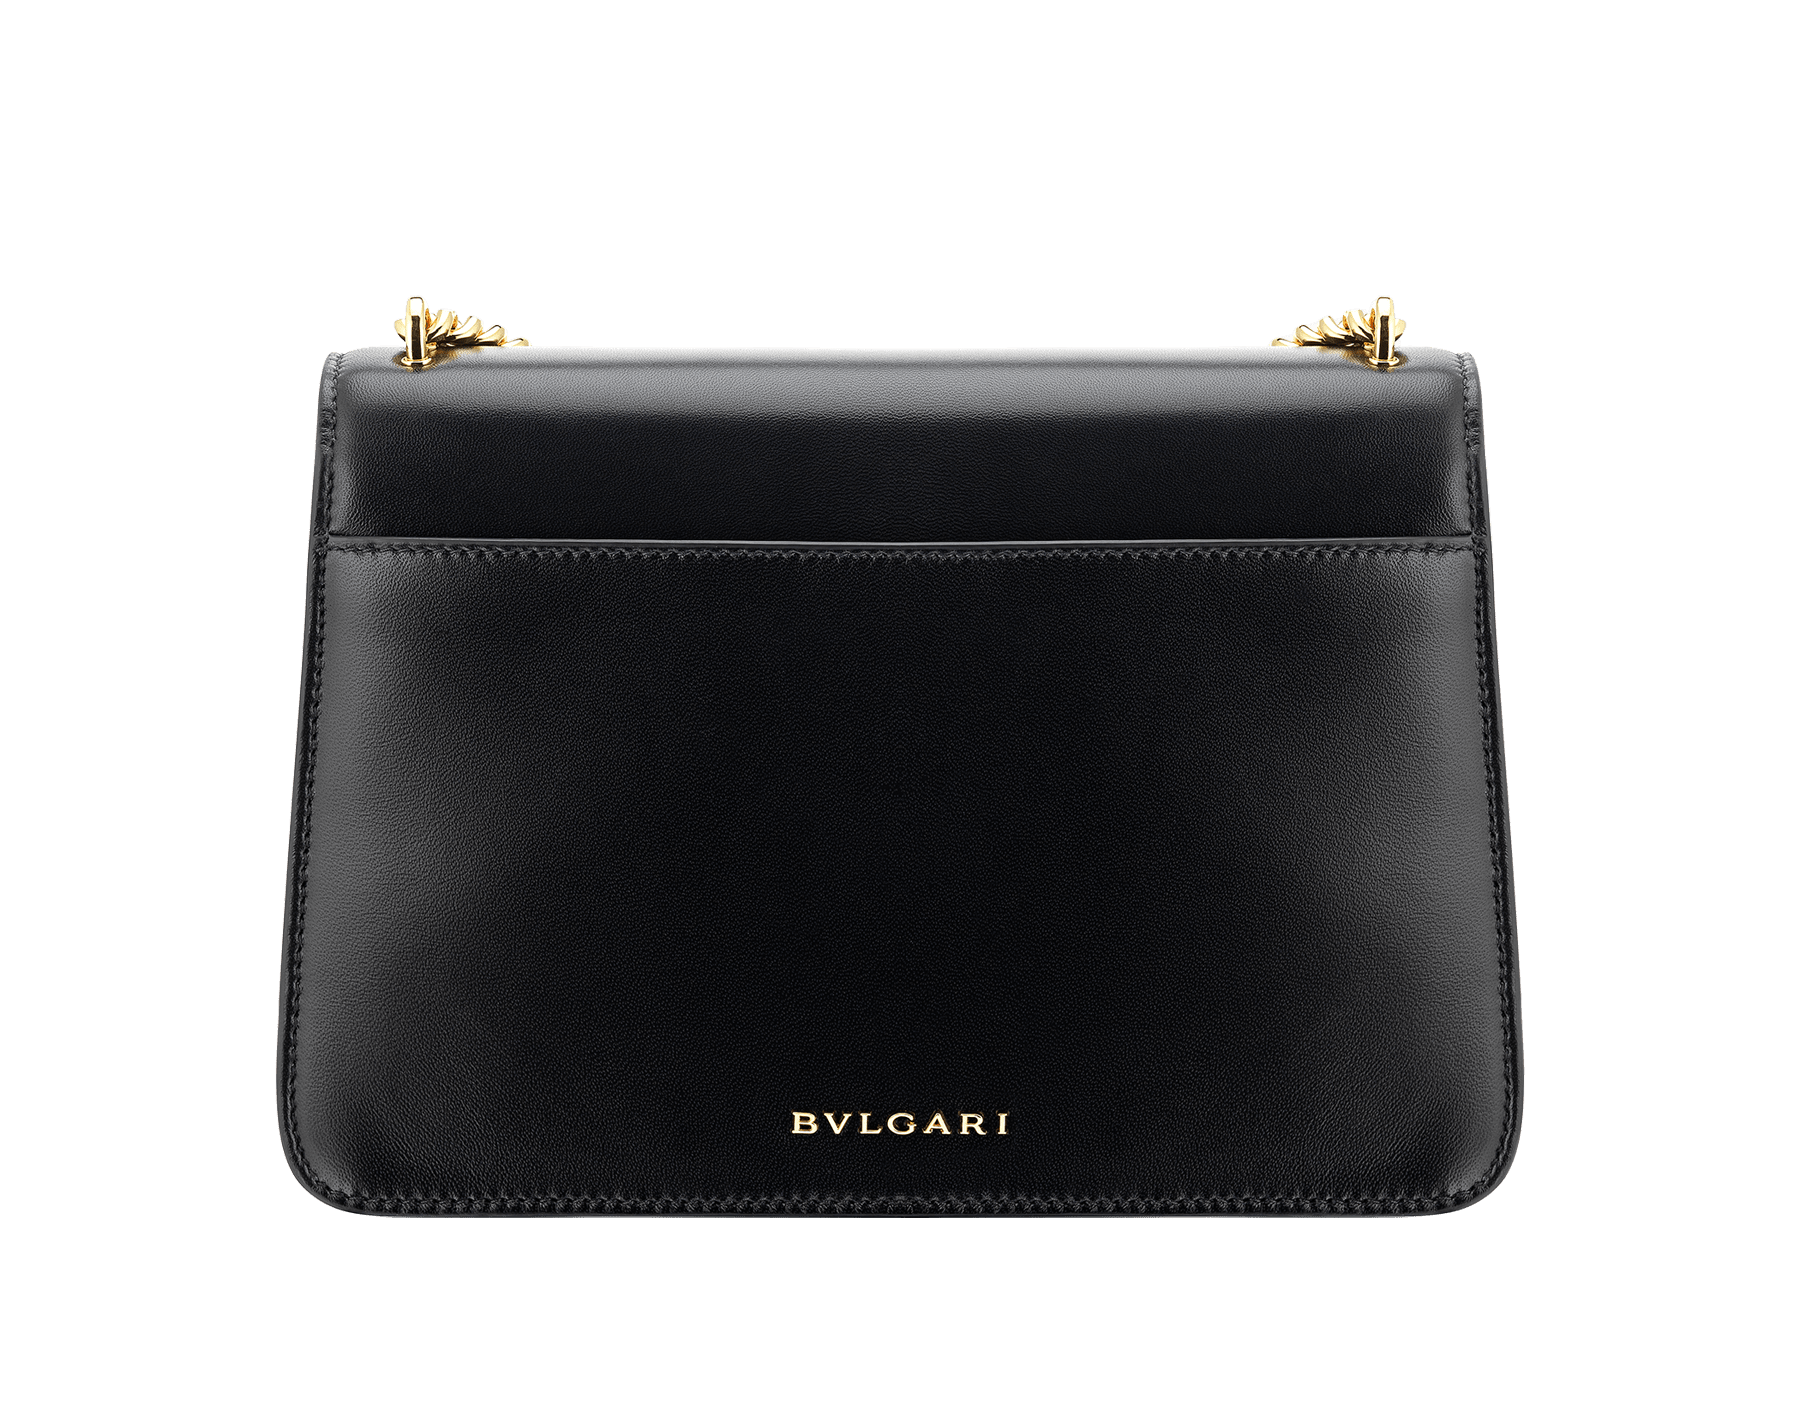 """""""Serpenti Forever"""" maxi chain crossbody bag in black nappa leather, with black nappa leather internal lining. New Serpenti head closure in gold-plated brass, finished with red enamel eyes. 290945 image 3"""